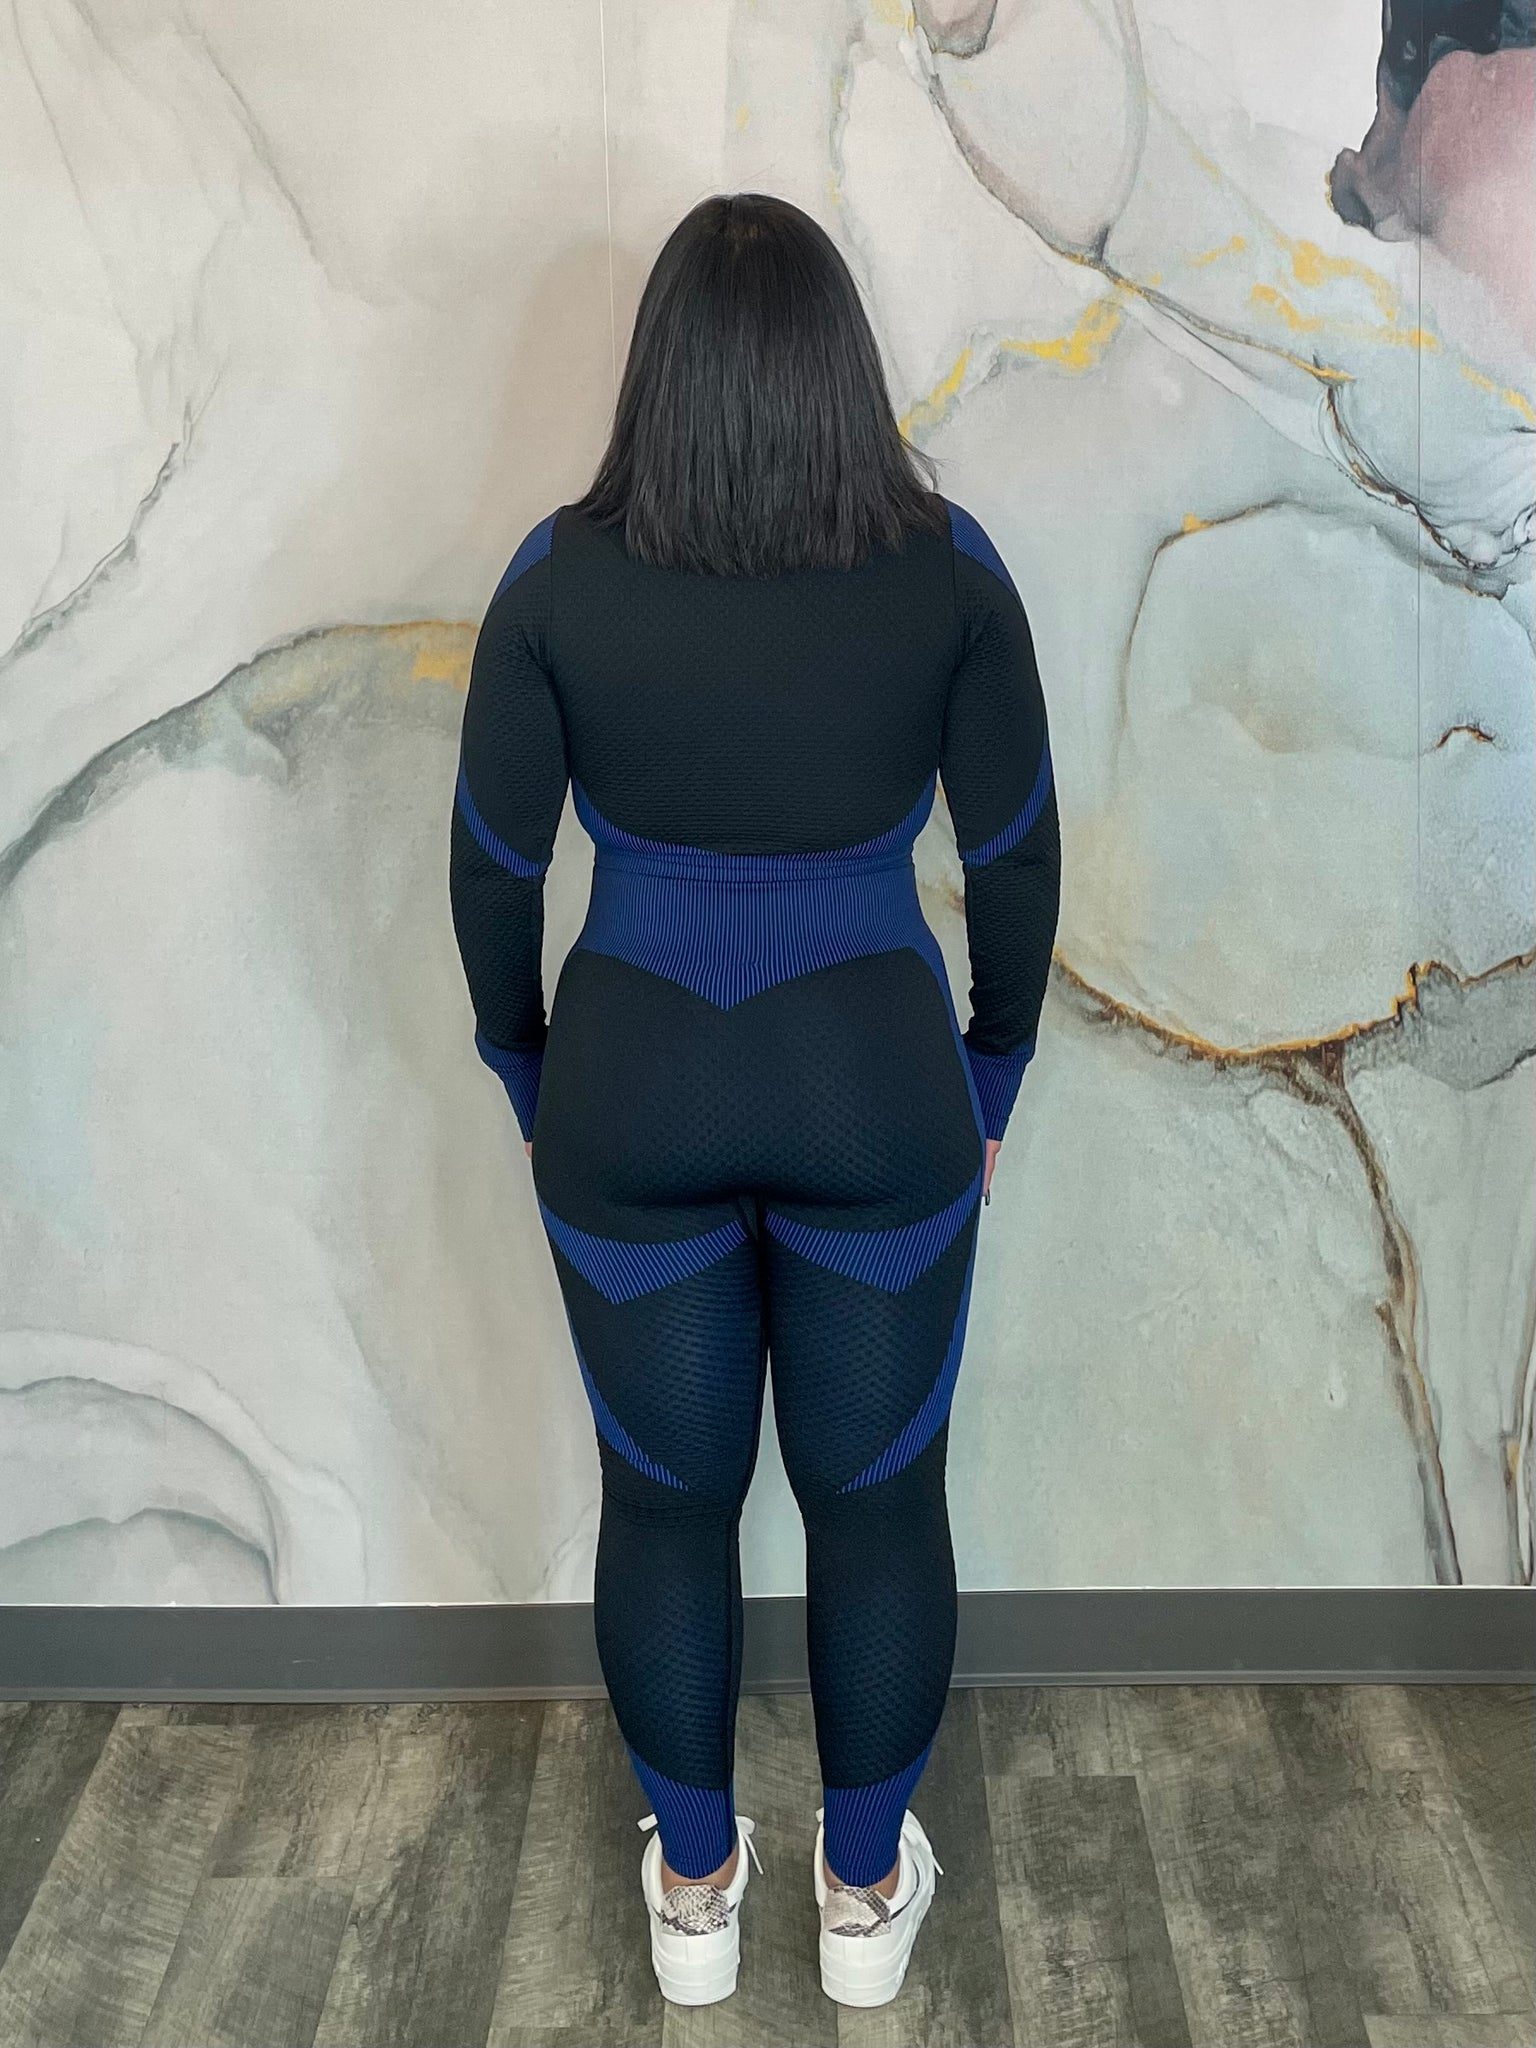 Match My Energy Legging Set